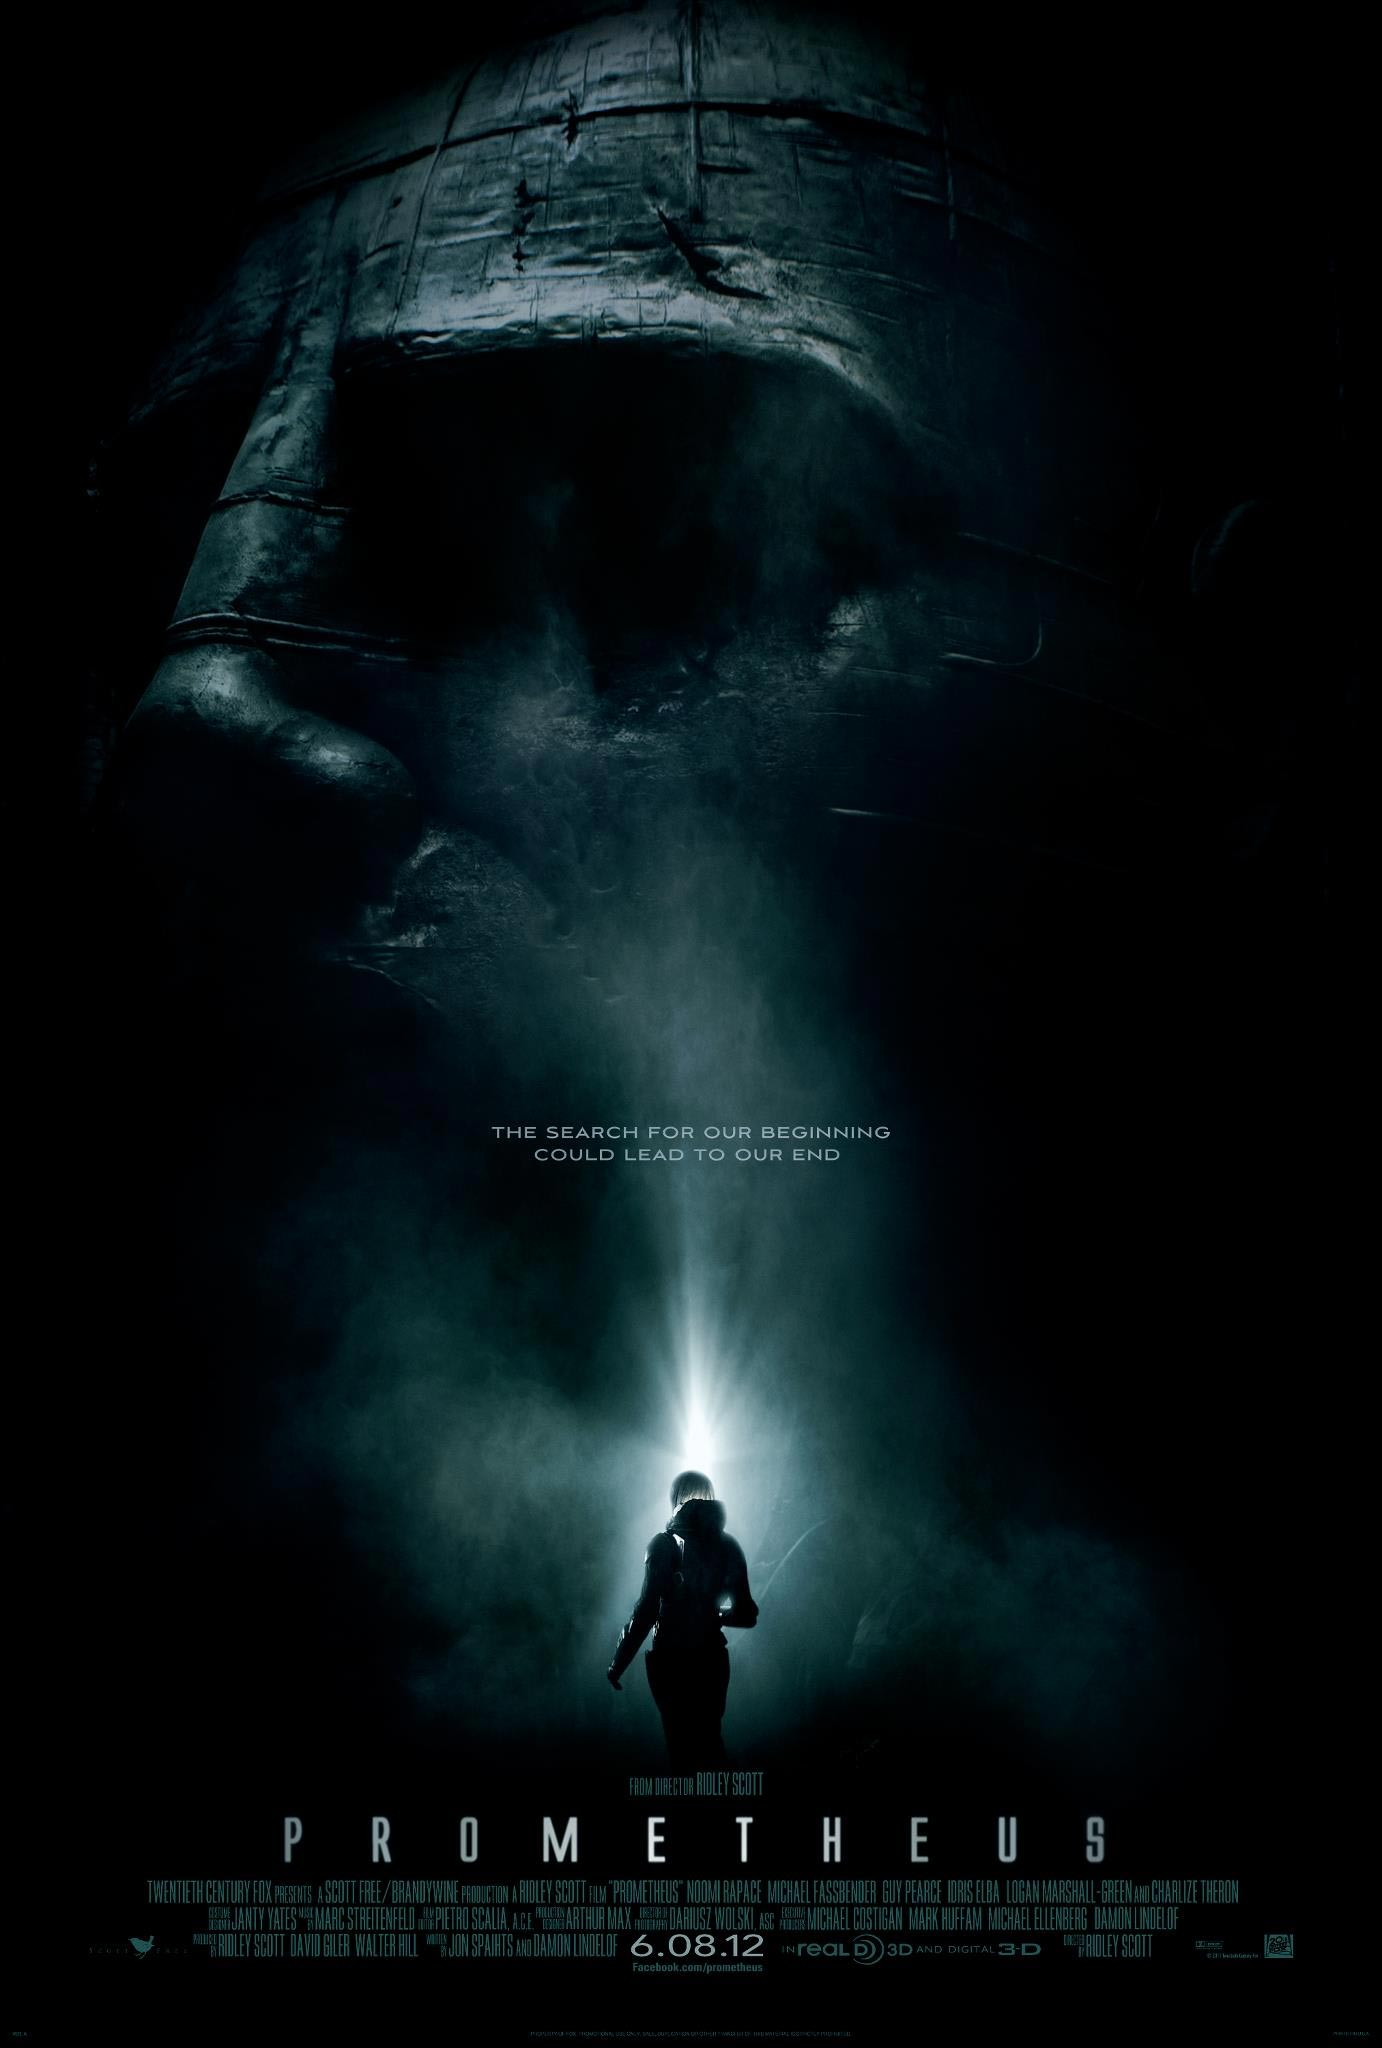 Movie Review: Prometheus-A Treat for the Eyes and Mind